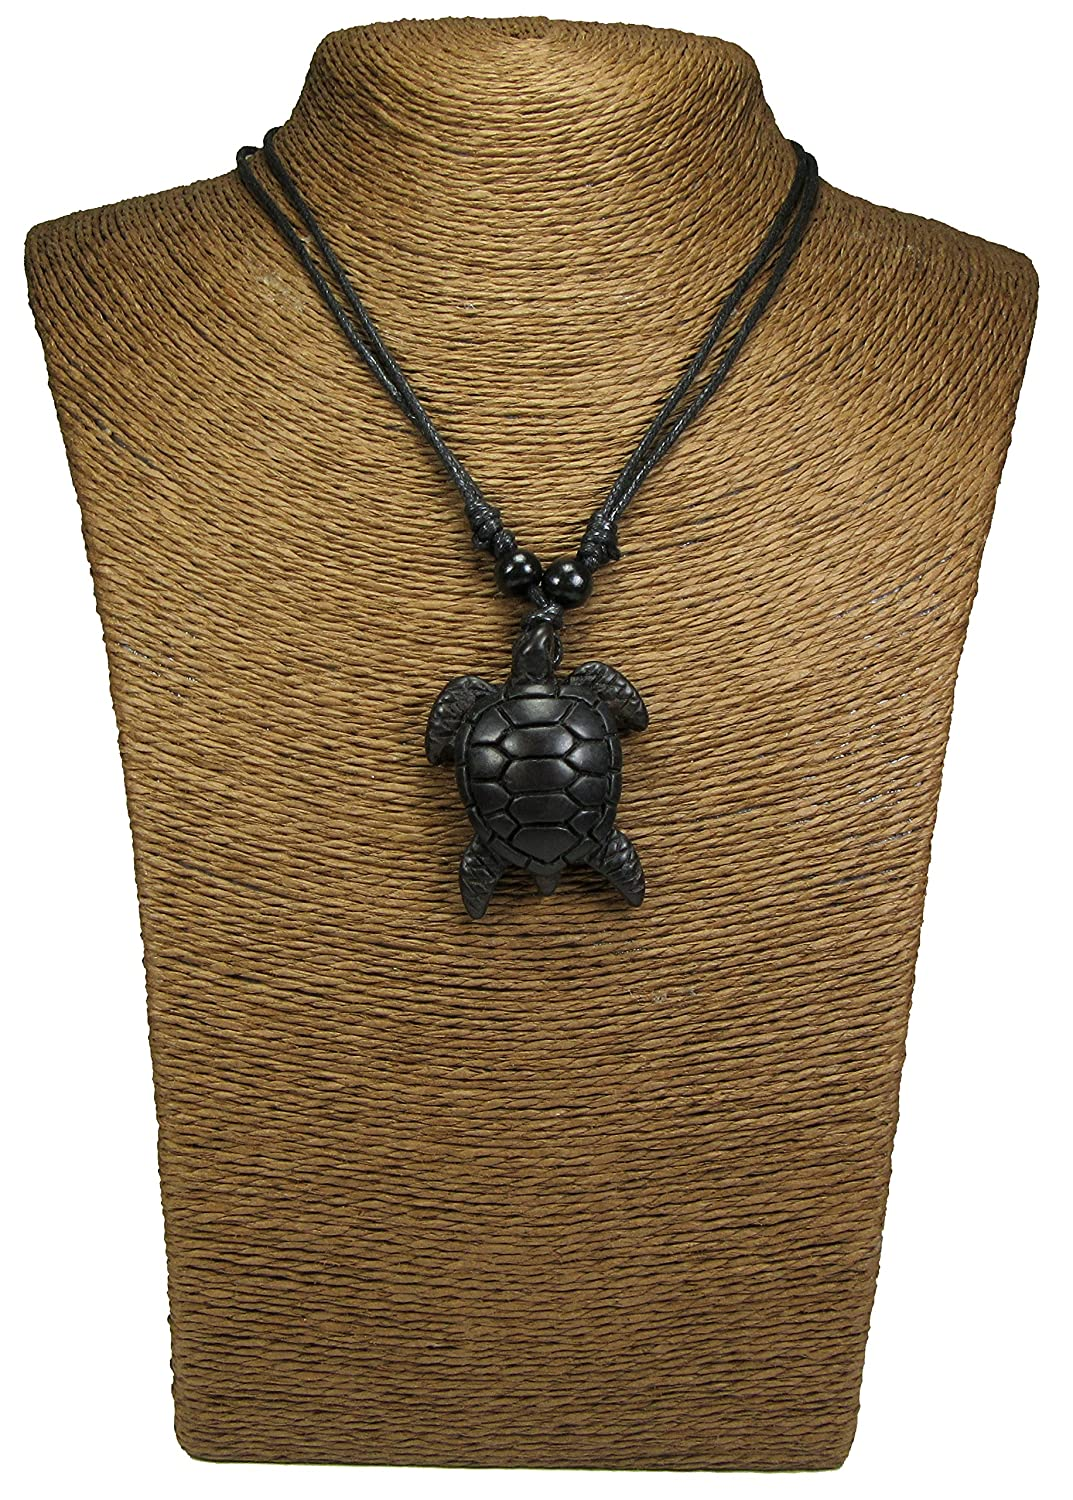 Turtle necklace turtle necklace with coqui taino and taino sun turtle necklace turtle necklace with coqui taino and taino sun sea turtle necklace black amazon buycottarizona